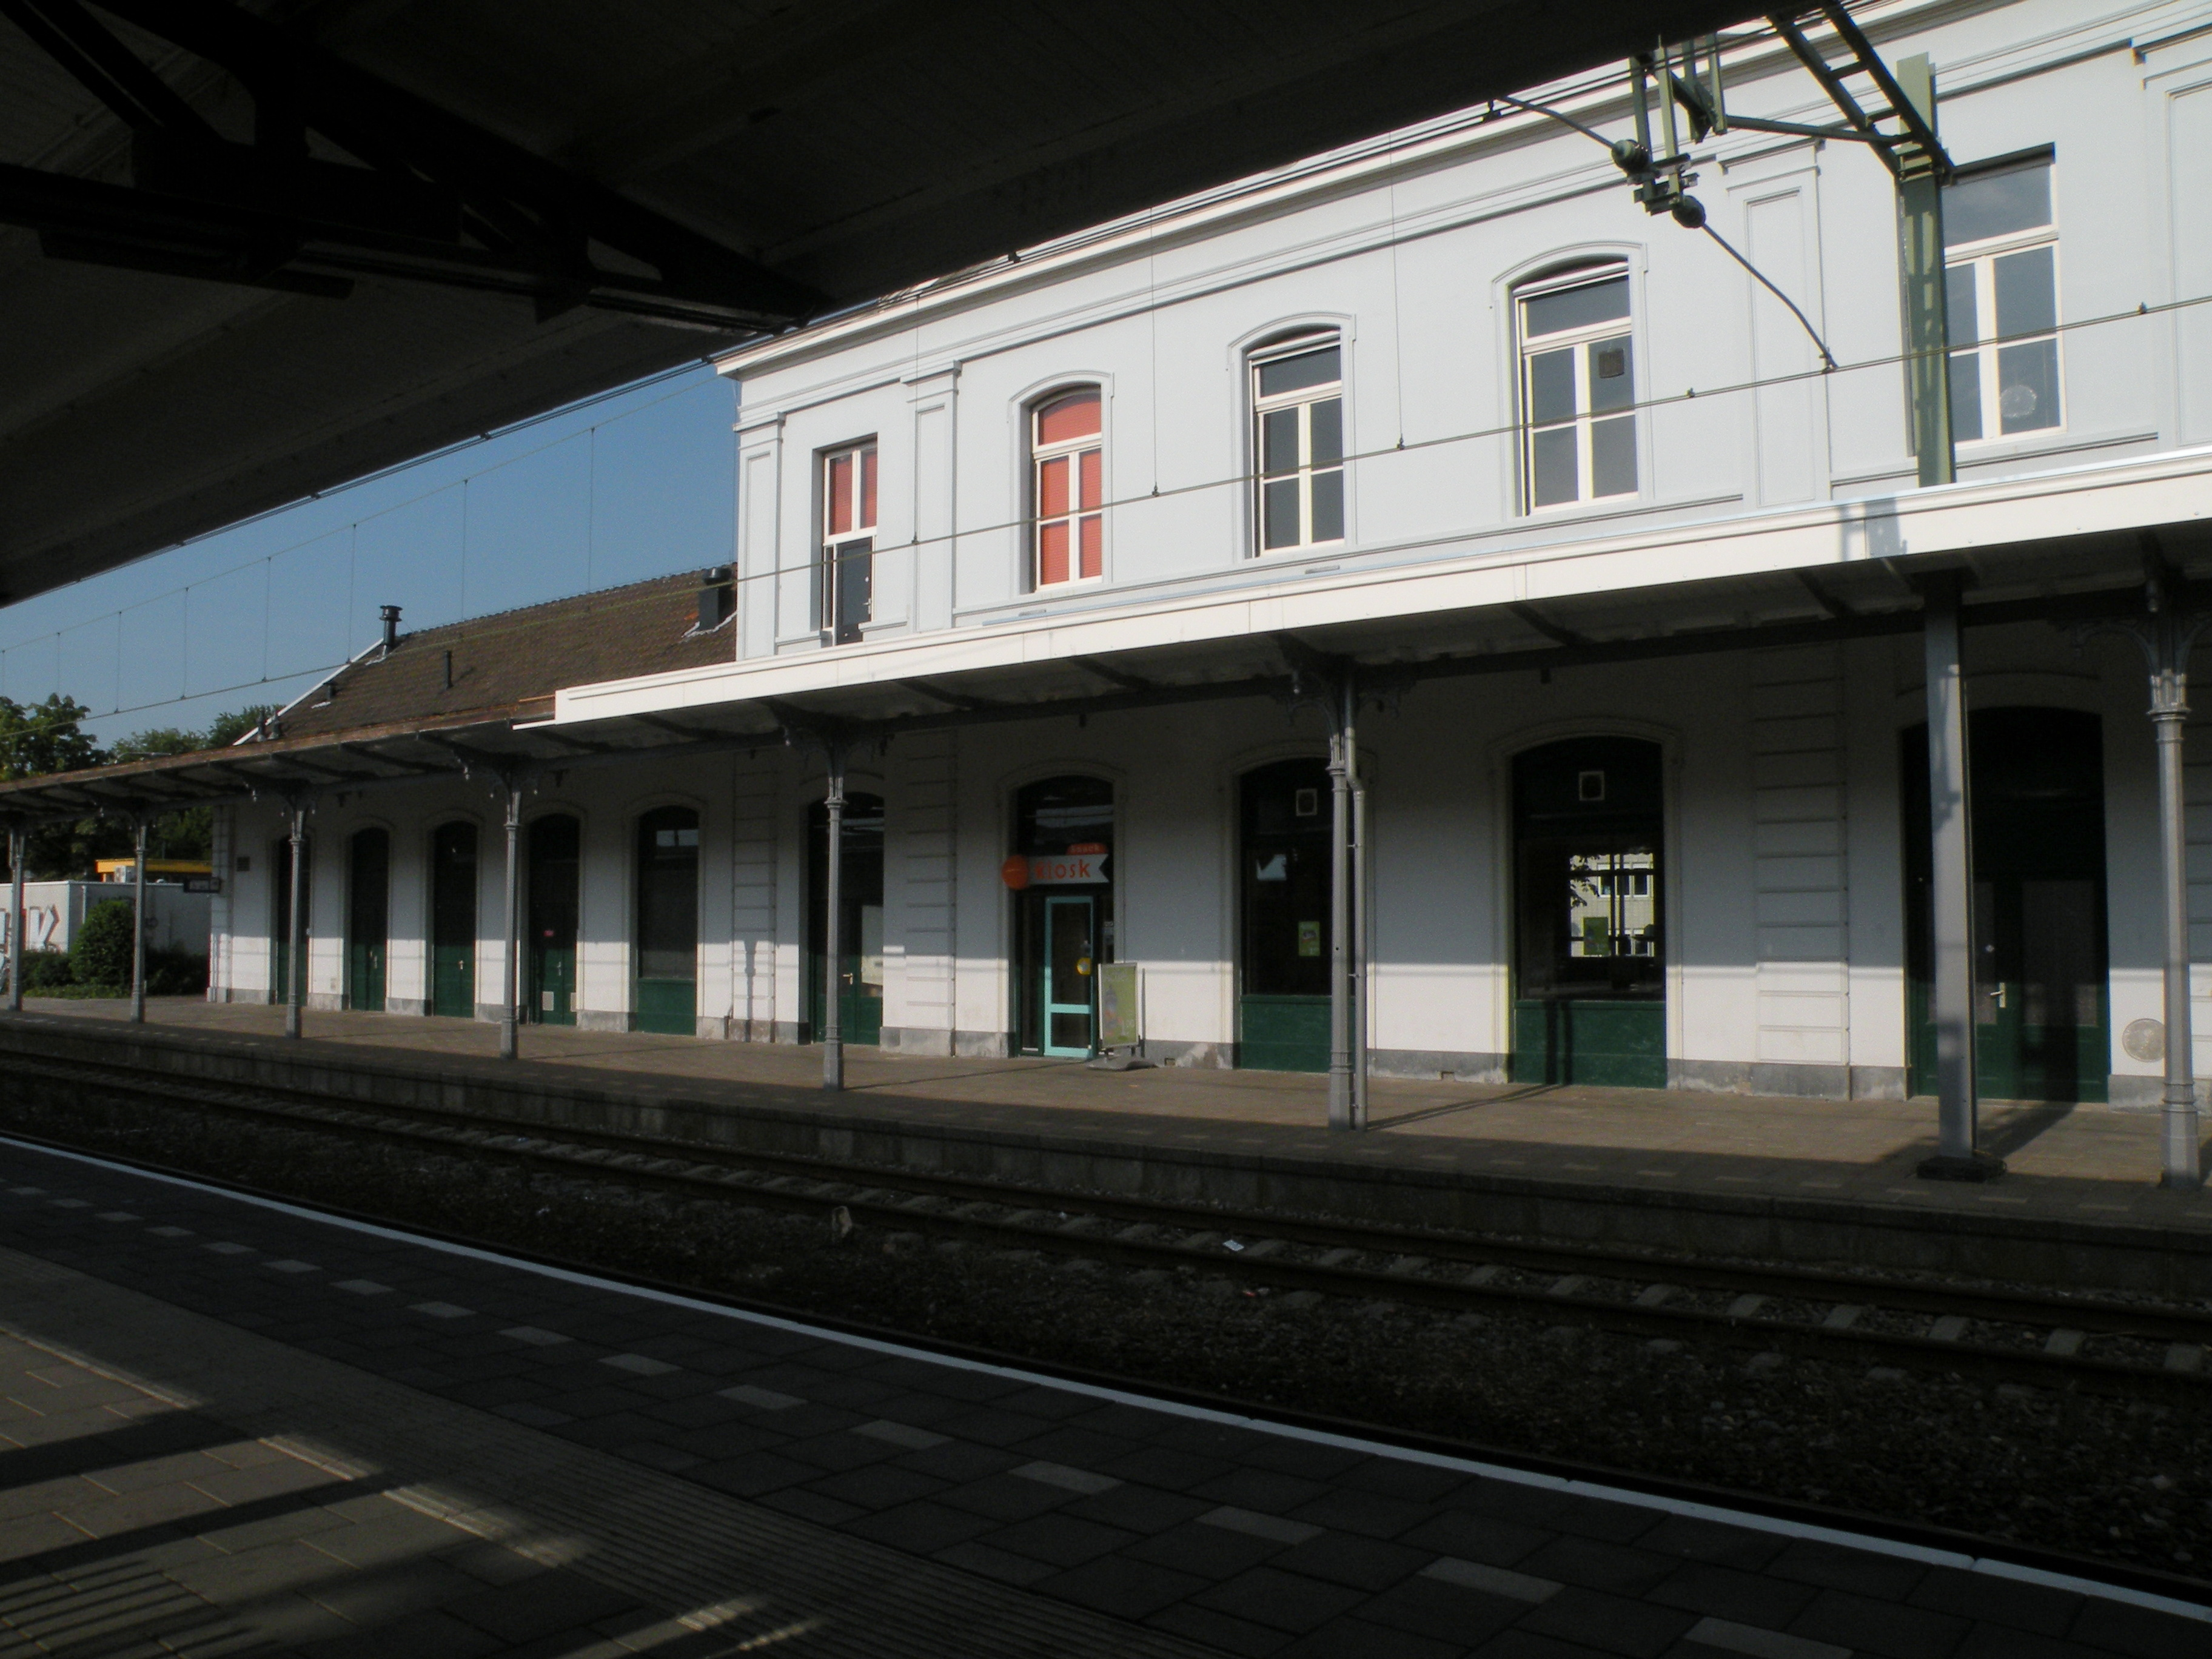 file:meppel, station (links) rm-508721-wlm - wikimedia commons